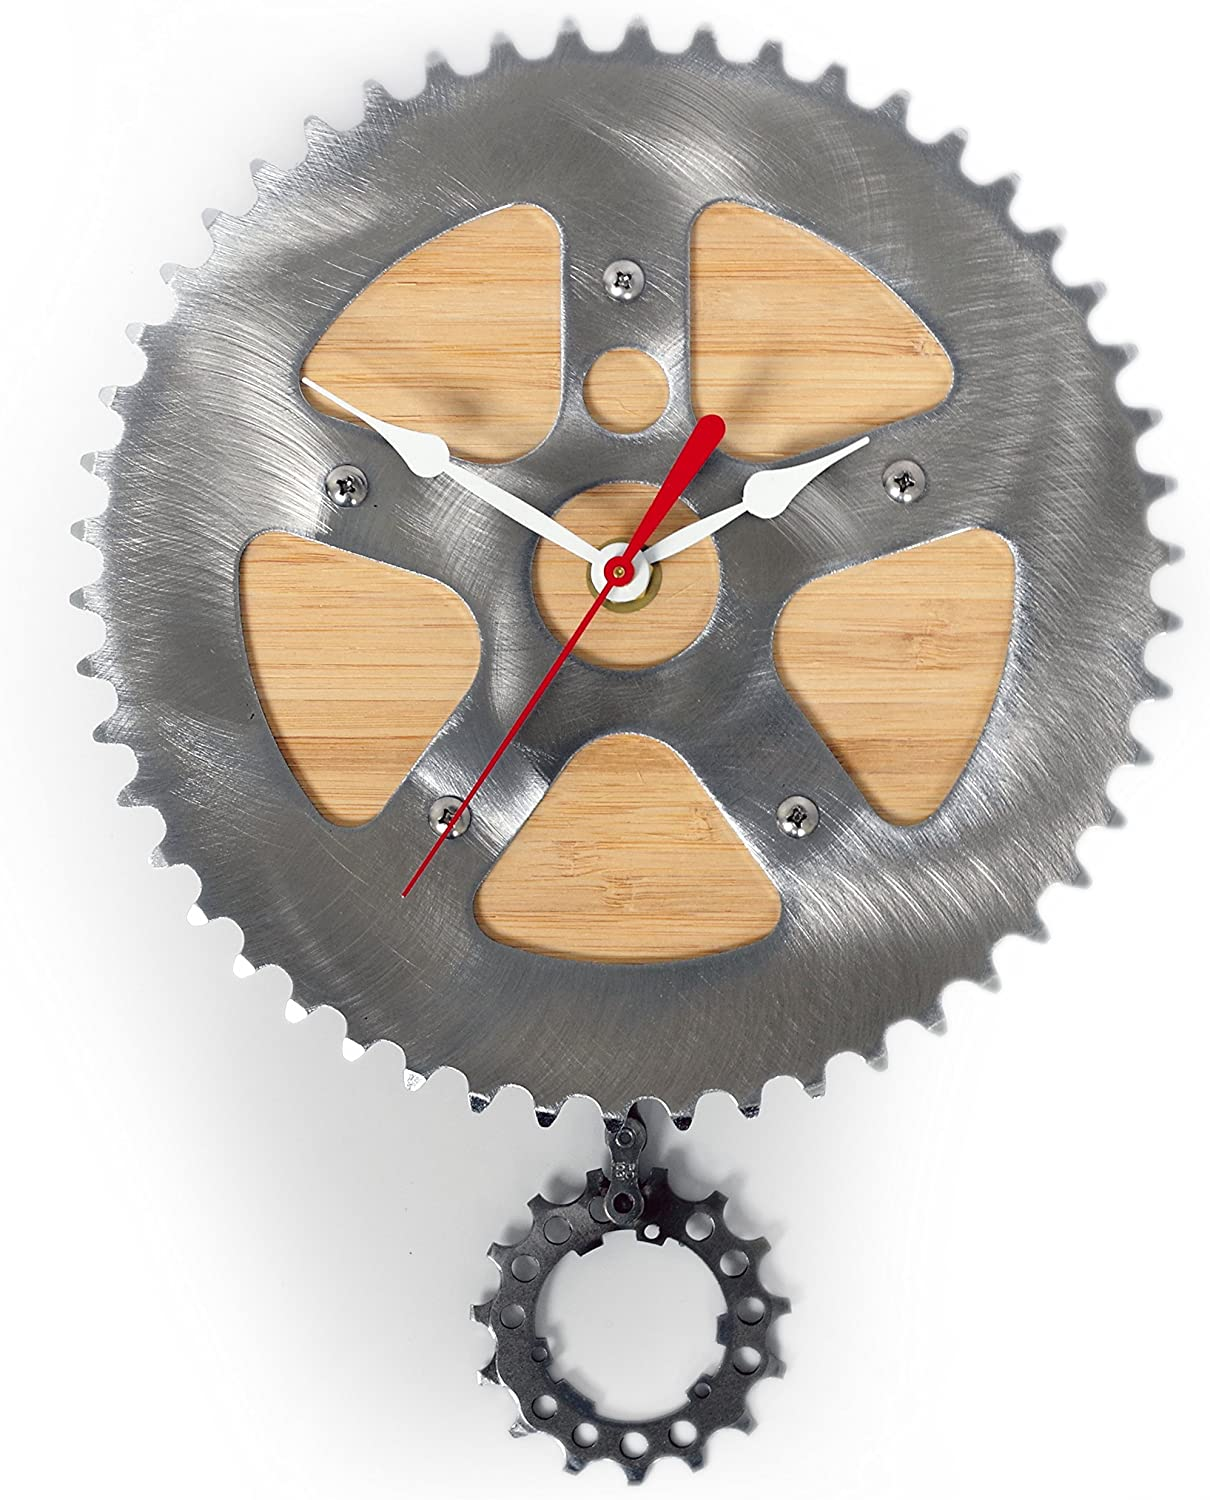 Resource Revival Bamboo Bike Clock Recycled Bicycle Material Wall Pendulum Clock   Rustic Modern Round Metal Gear Clock - Created for The Adventurer